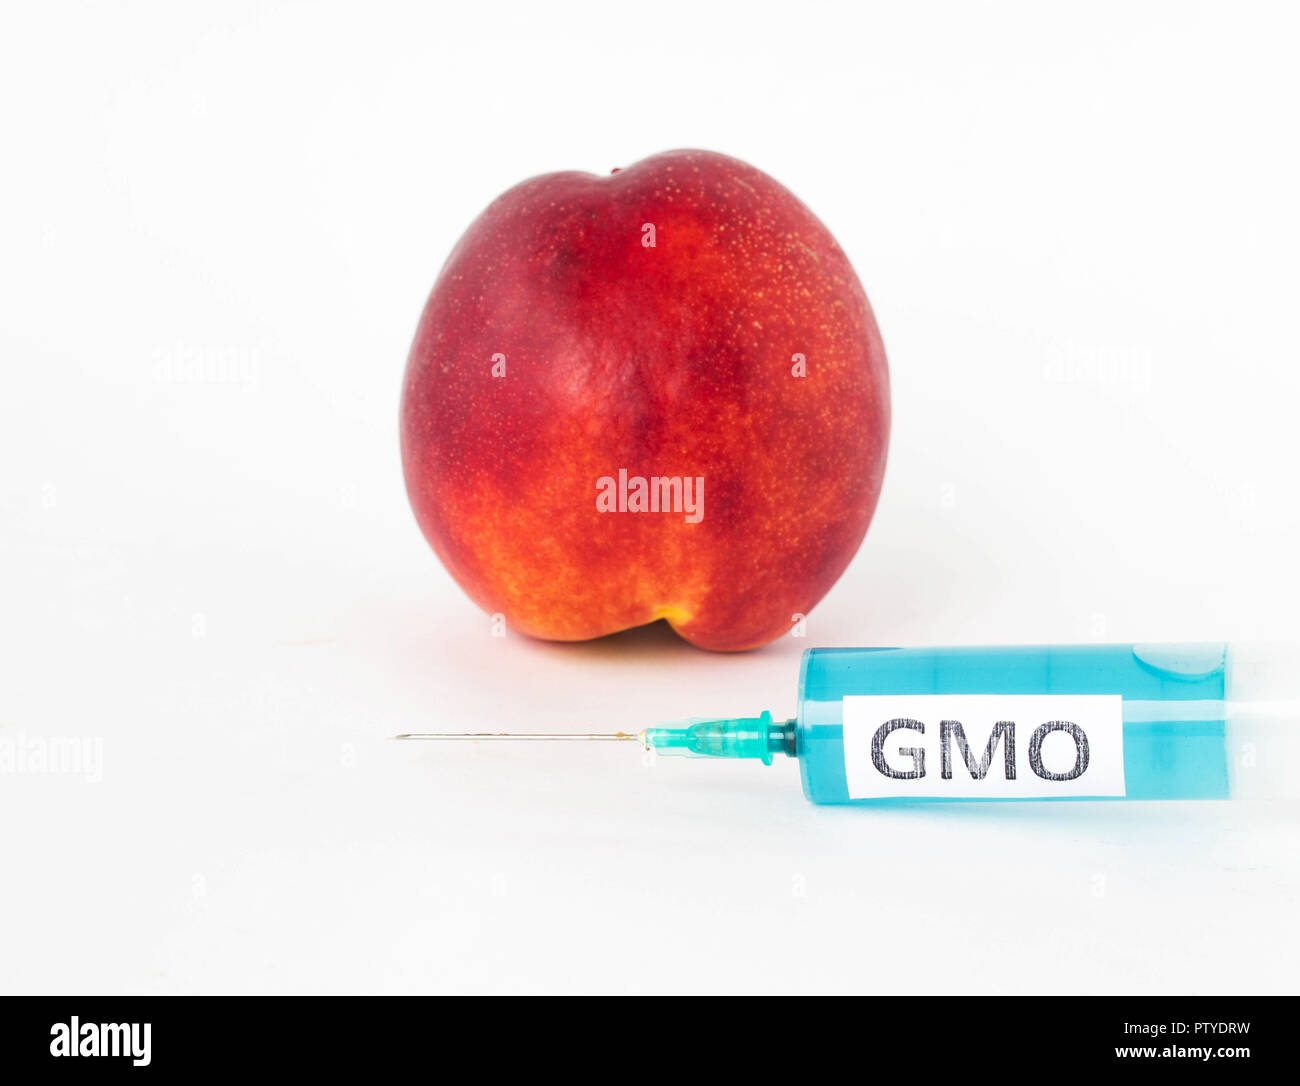 Nectarine on a white background, next is a syringe with gmo and nitrates, close-up, genetically modified organism - Stock Image